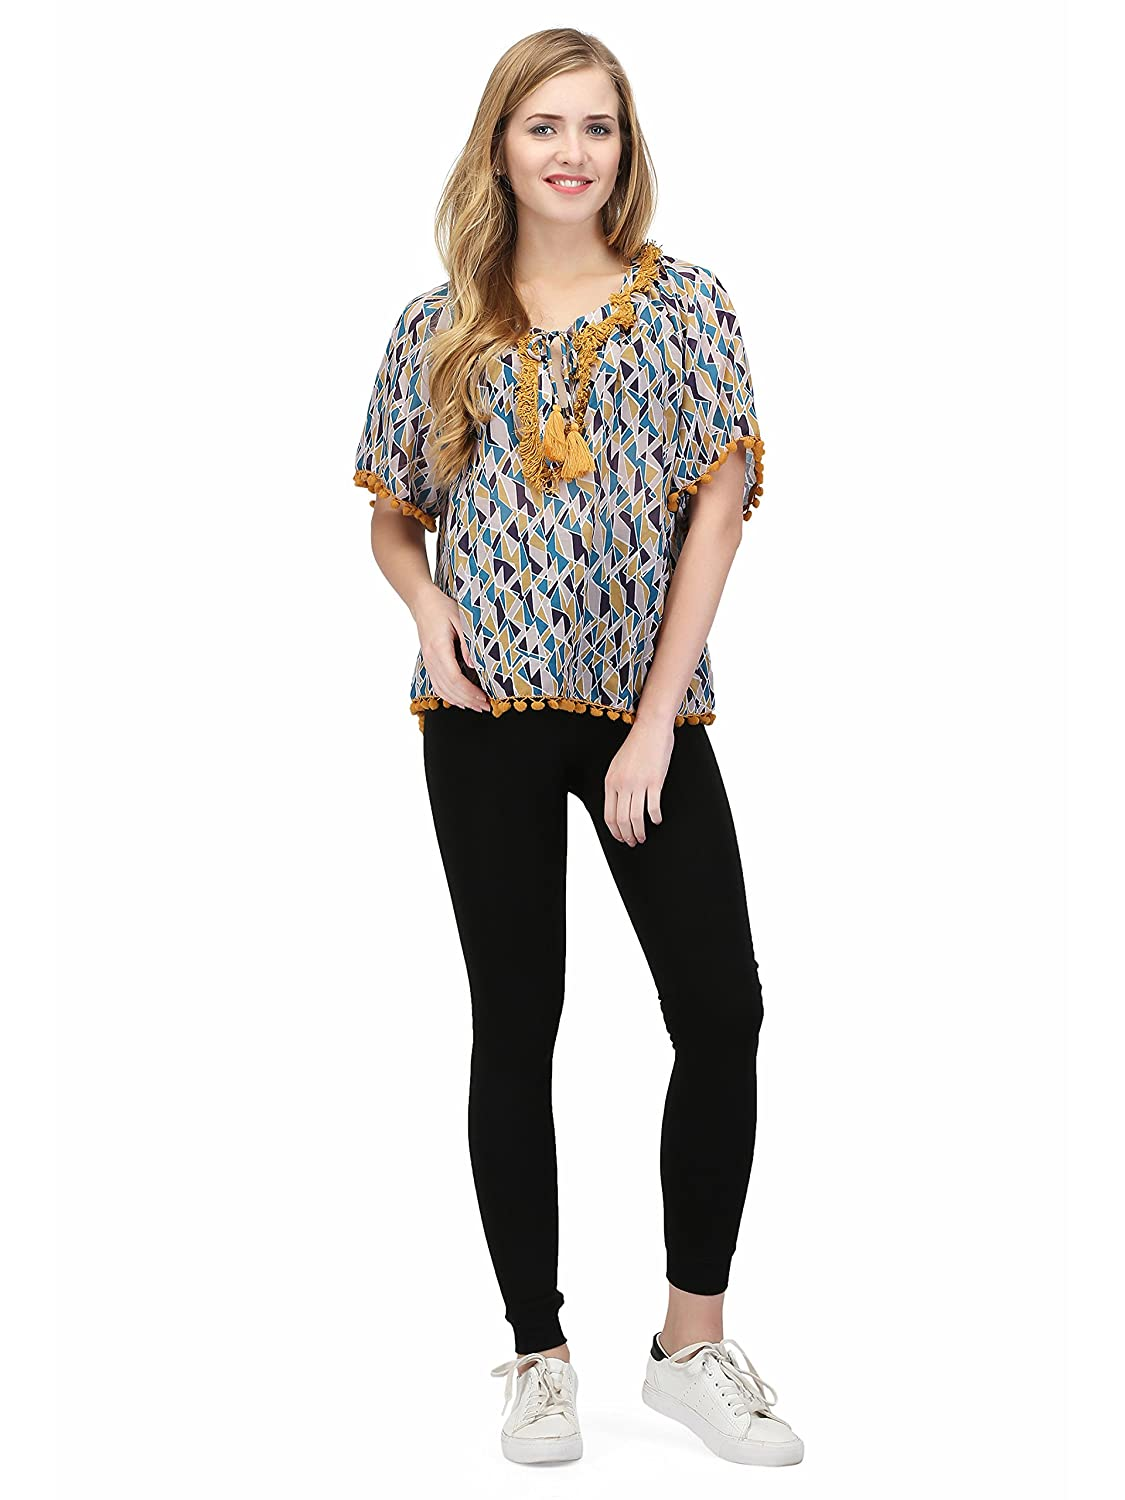 I AM FOR YOU Women's & Girl's Clothing Starting at Rs.199